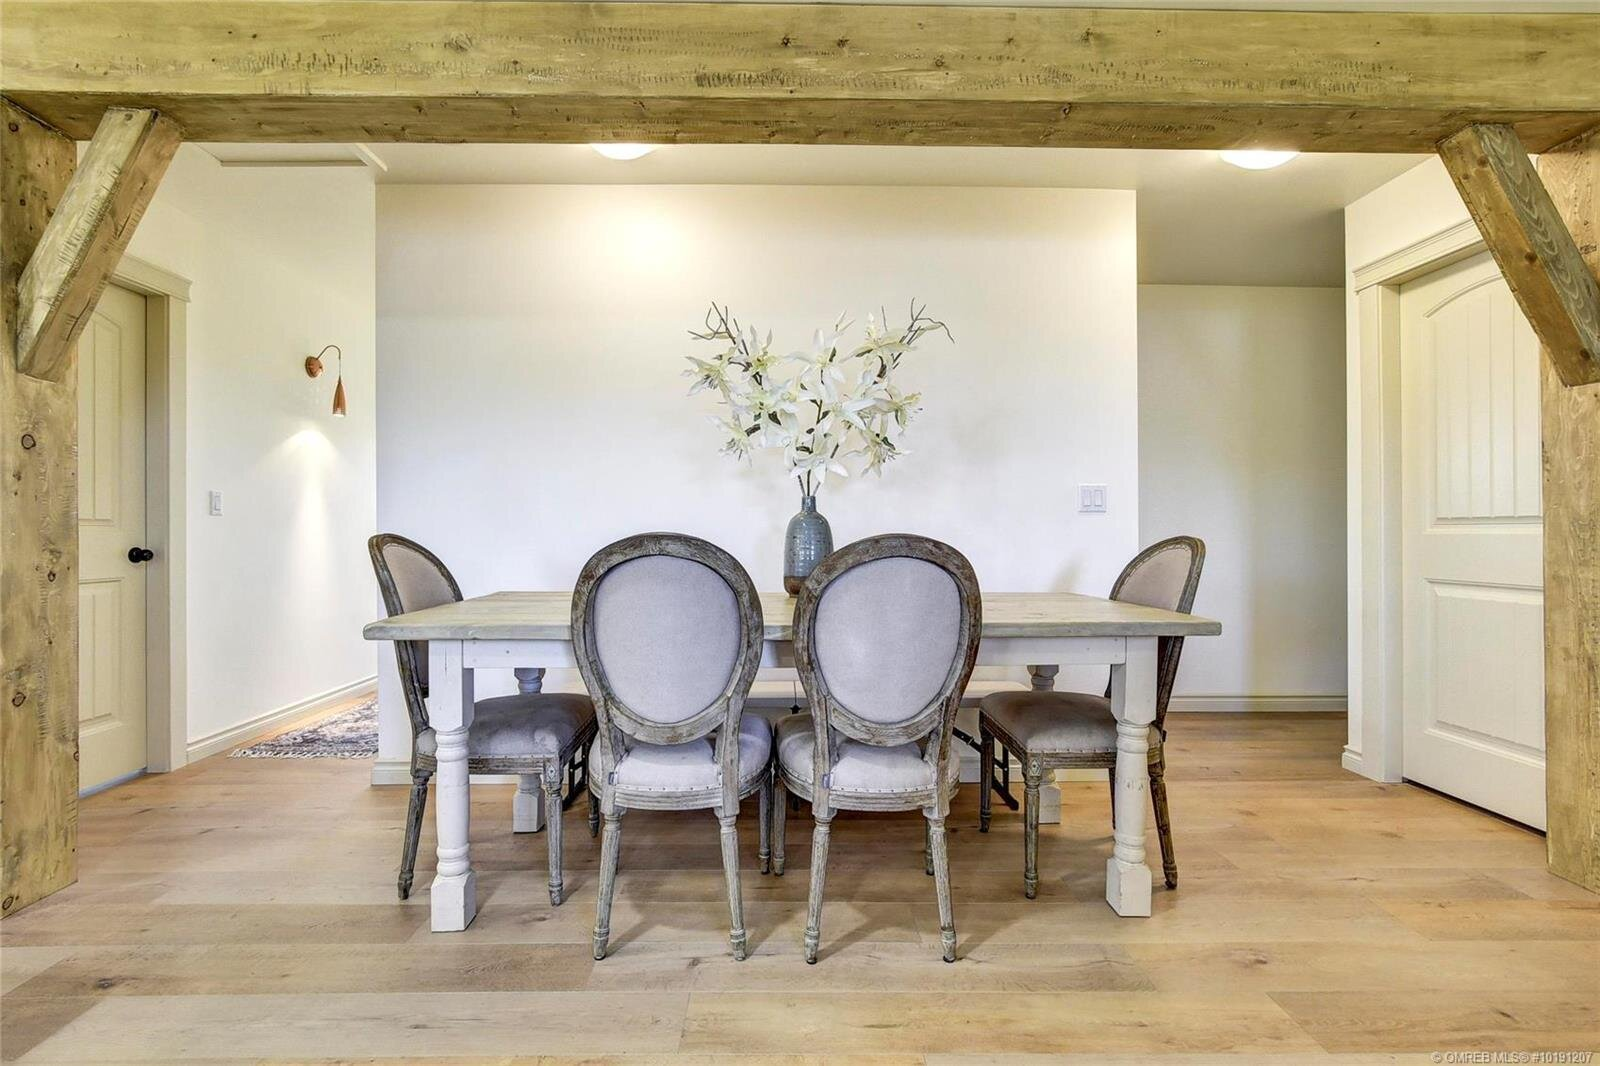 505-hollywood-road-south-farmhouse-inspired-family-home-kelowna-rutland-dining-space.jpg